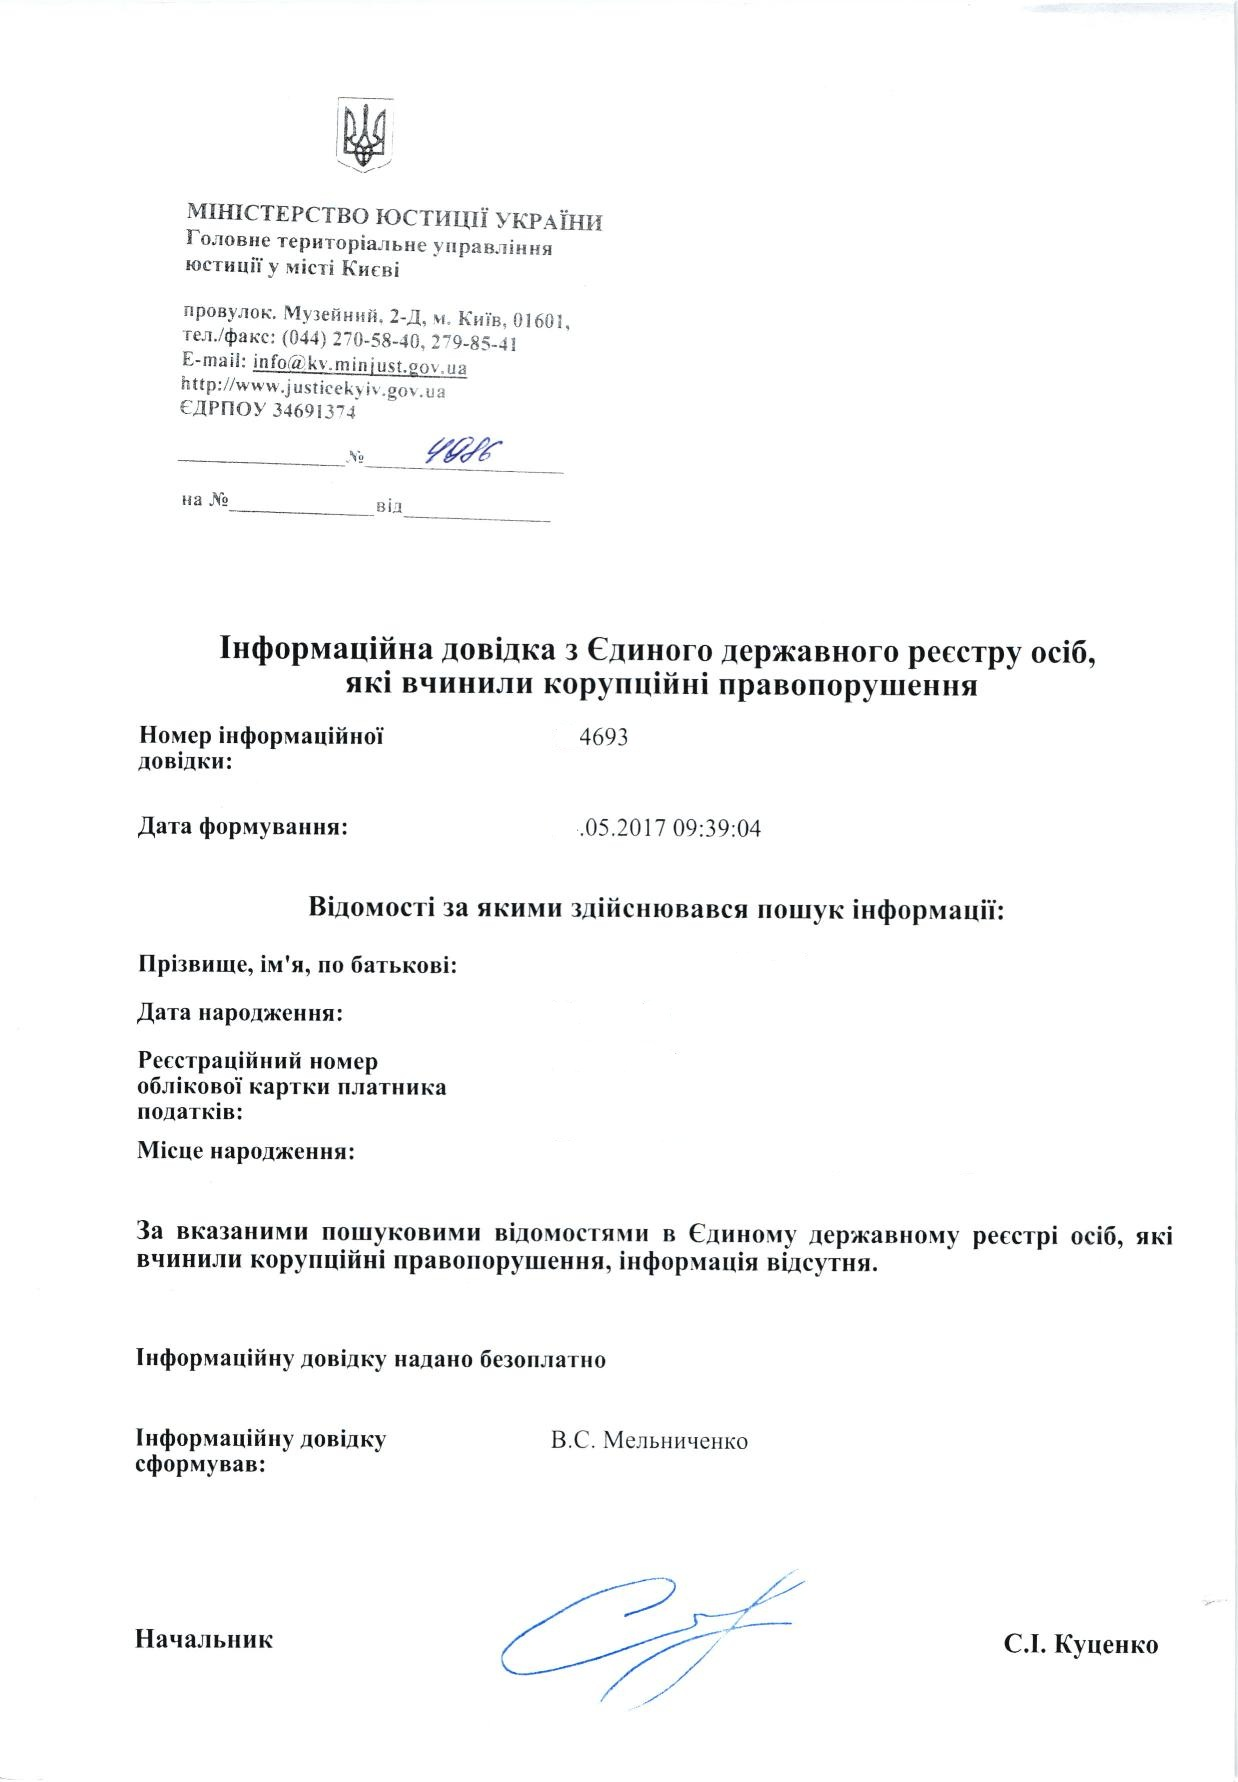 Law firms of Ivano-Frankivsk region: a selection of sites